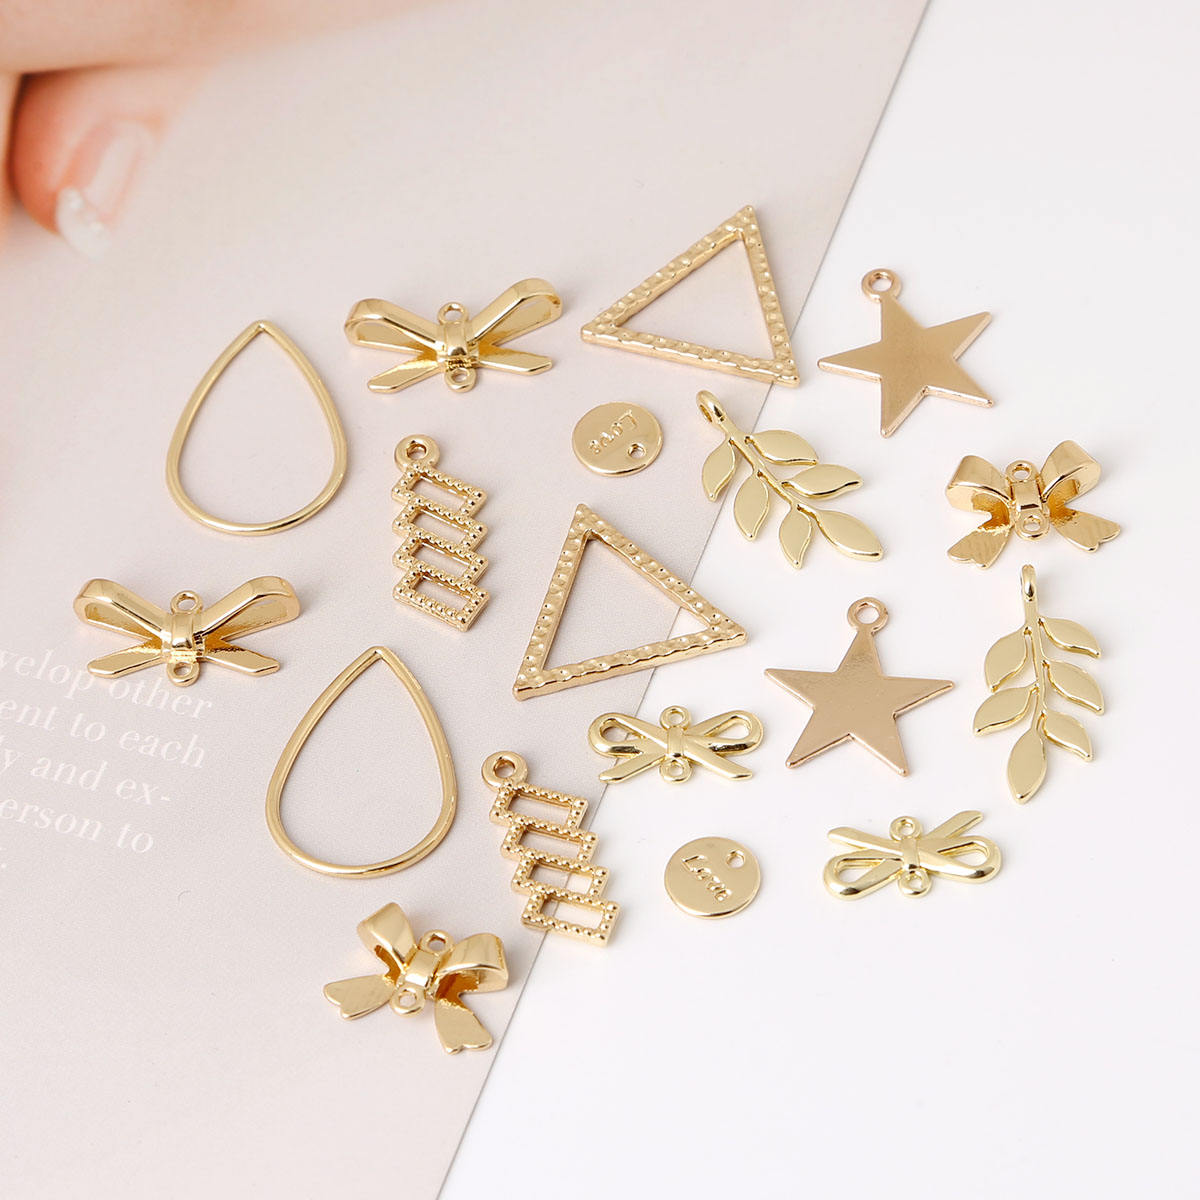 New 10pcs/lot Mixed Styles Bow Leaf Geometry Alloy Metal Charms Pendant for DIY Necklace Bracelet Earring Jewelry Findings